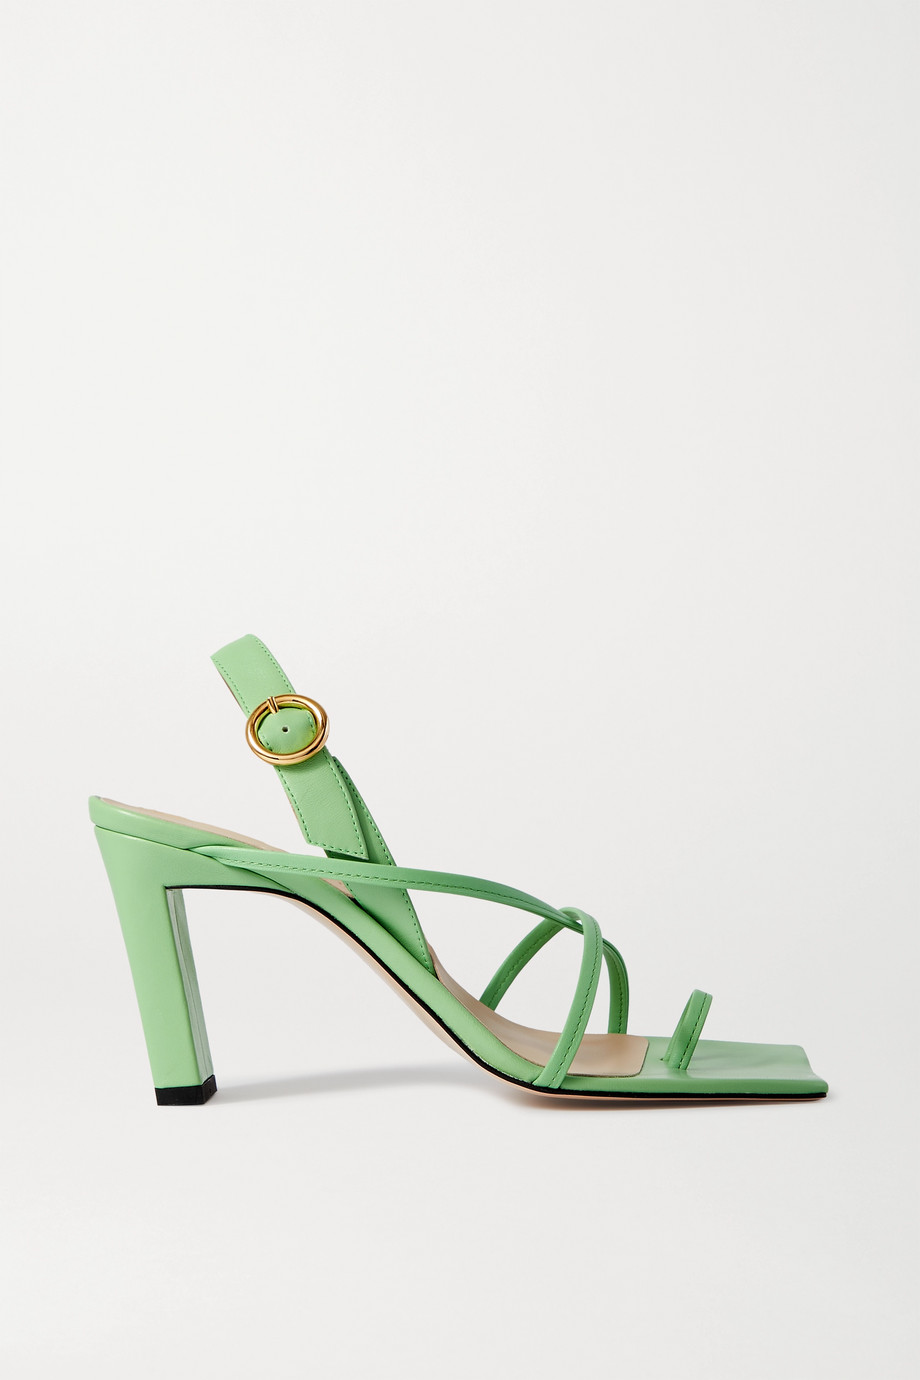 Wandler Elza leather slingback sandals